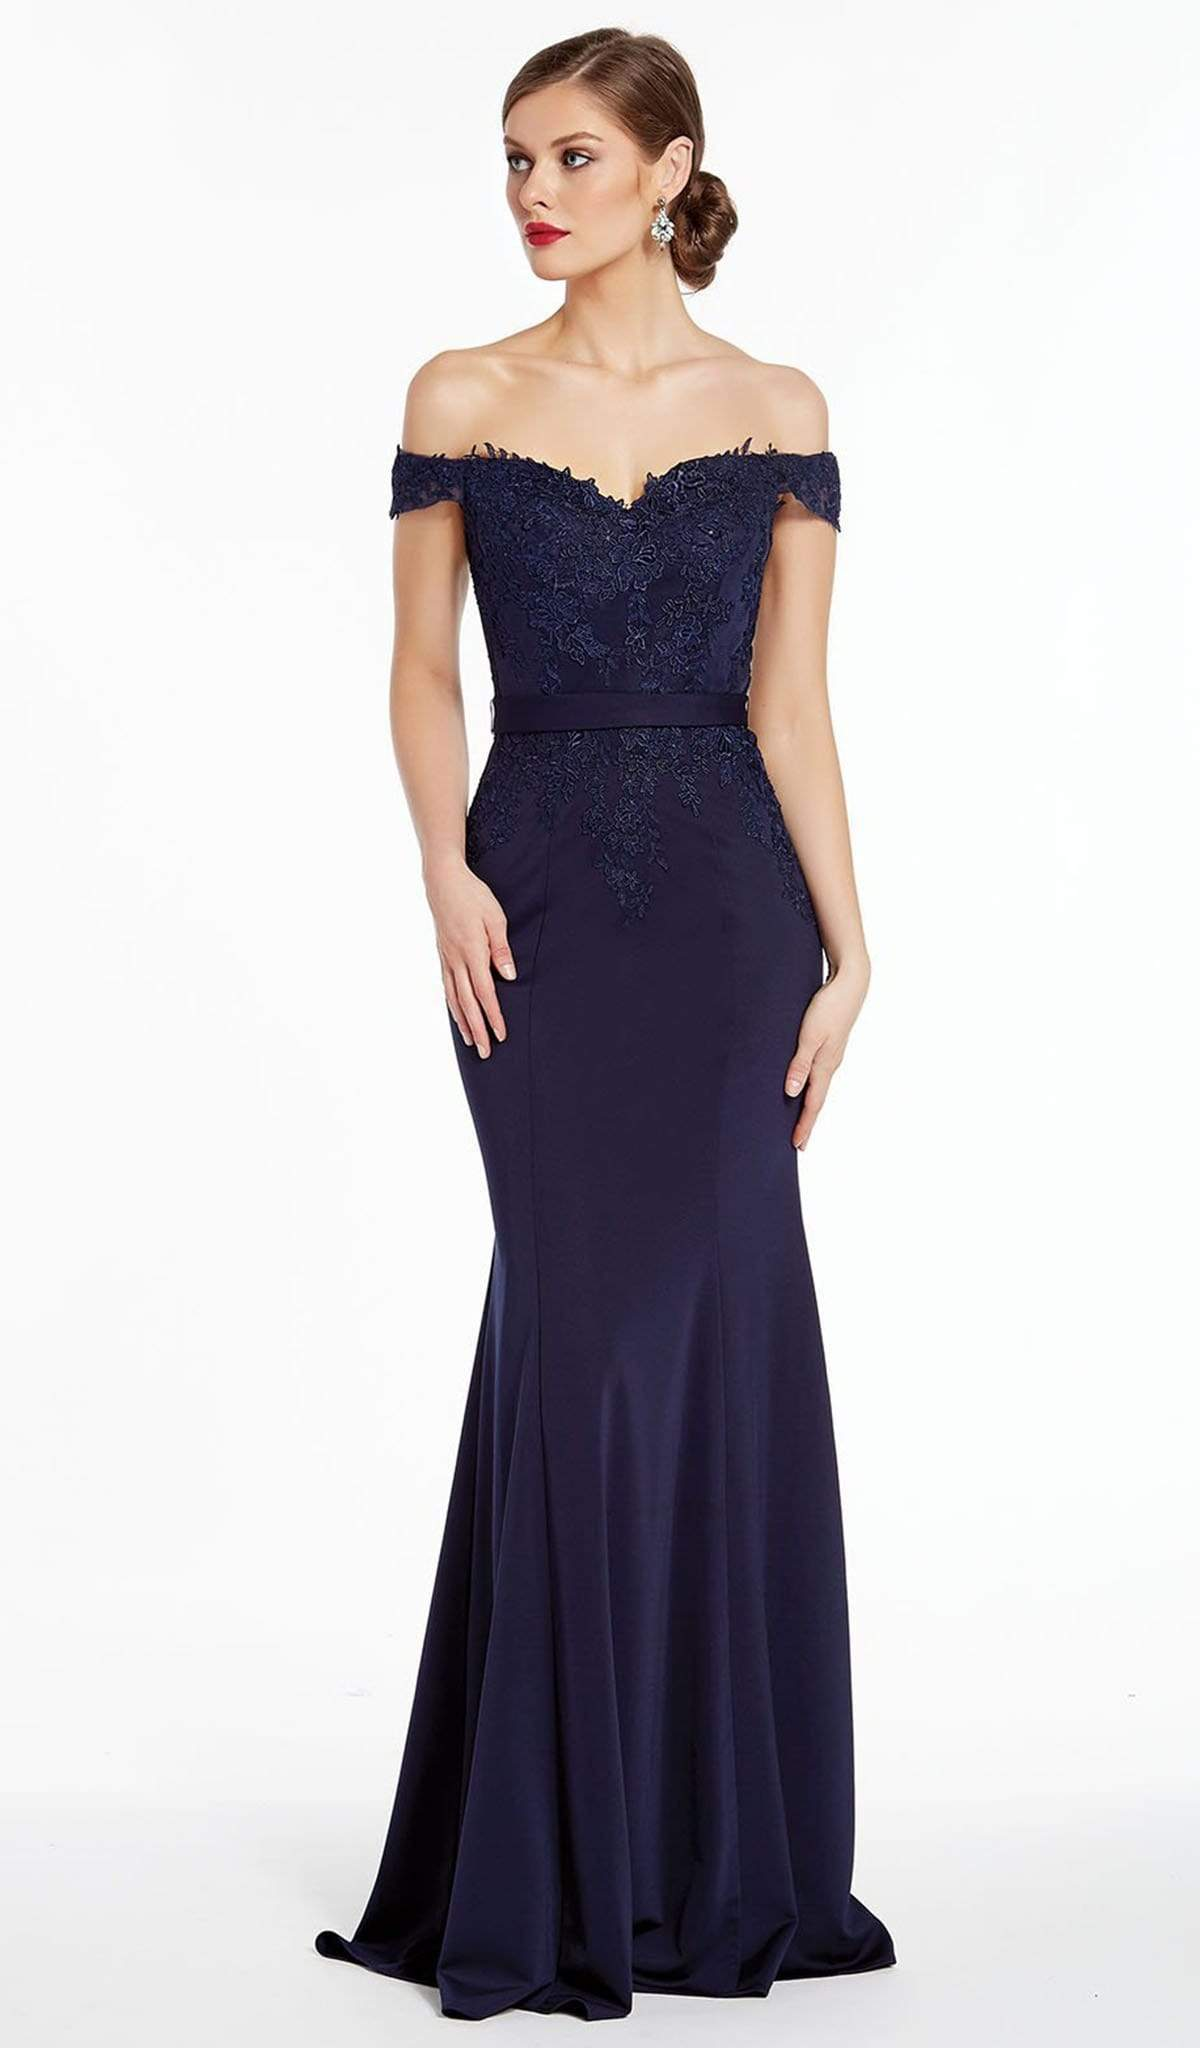 Alyce Paris - 27309 Off Shoulder Trailing Lace Sheath Gown from Alyce Paris